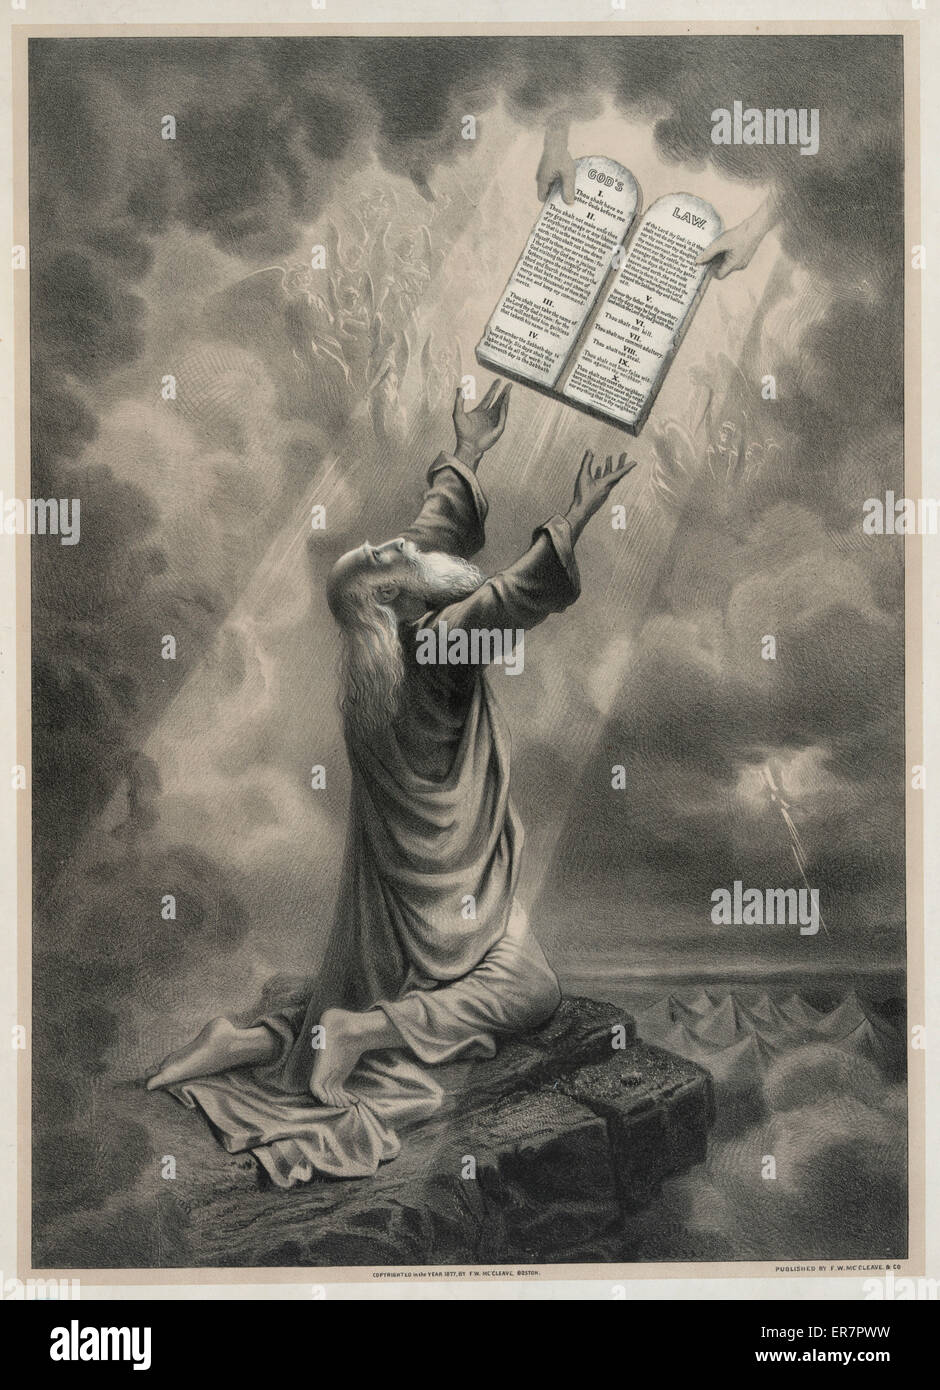 Moses receiveing the law. Print shows Moses kneeling and reaching upwards to accept the tablets inscribed with theTen Commandments from the hands of God. Angels can be seen in the heaven. Date c1877. Stock Photo